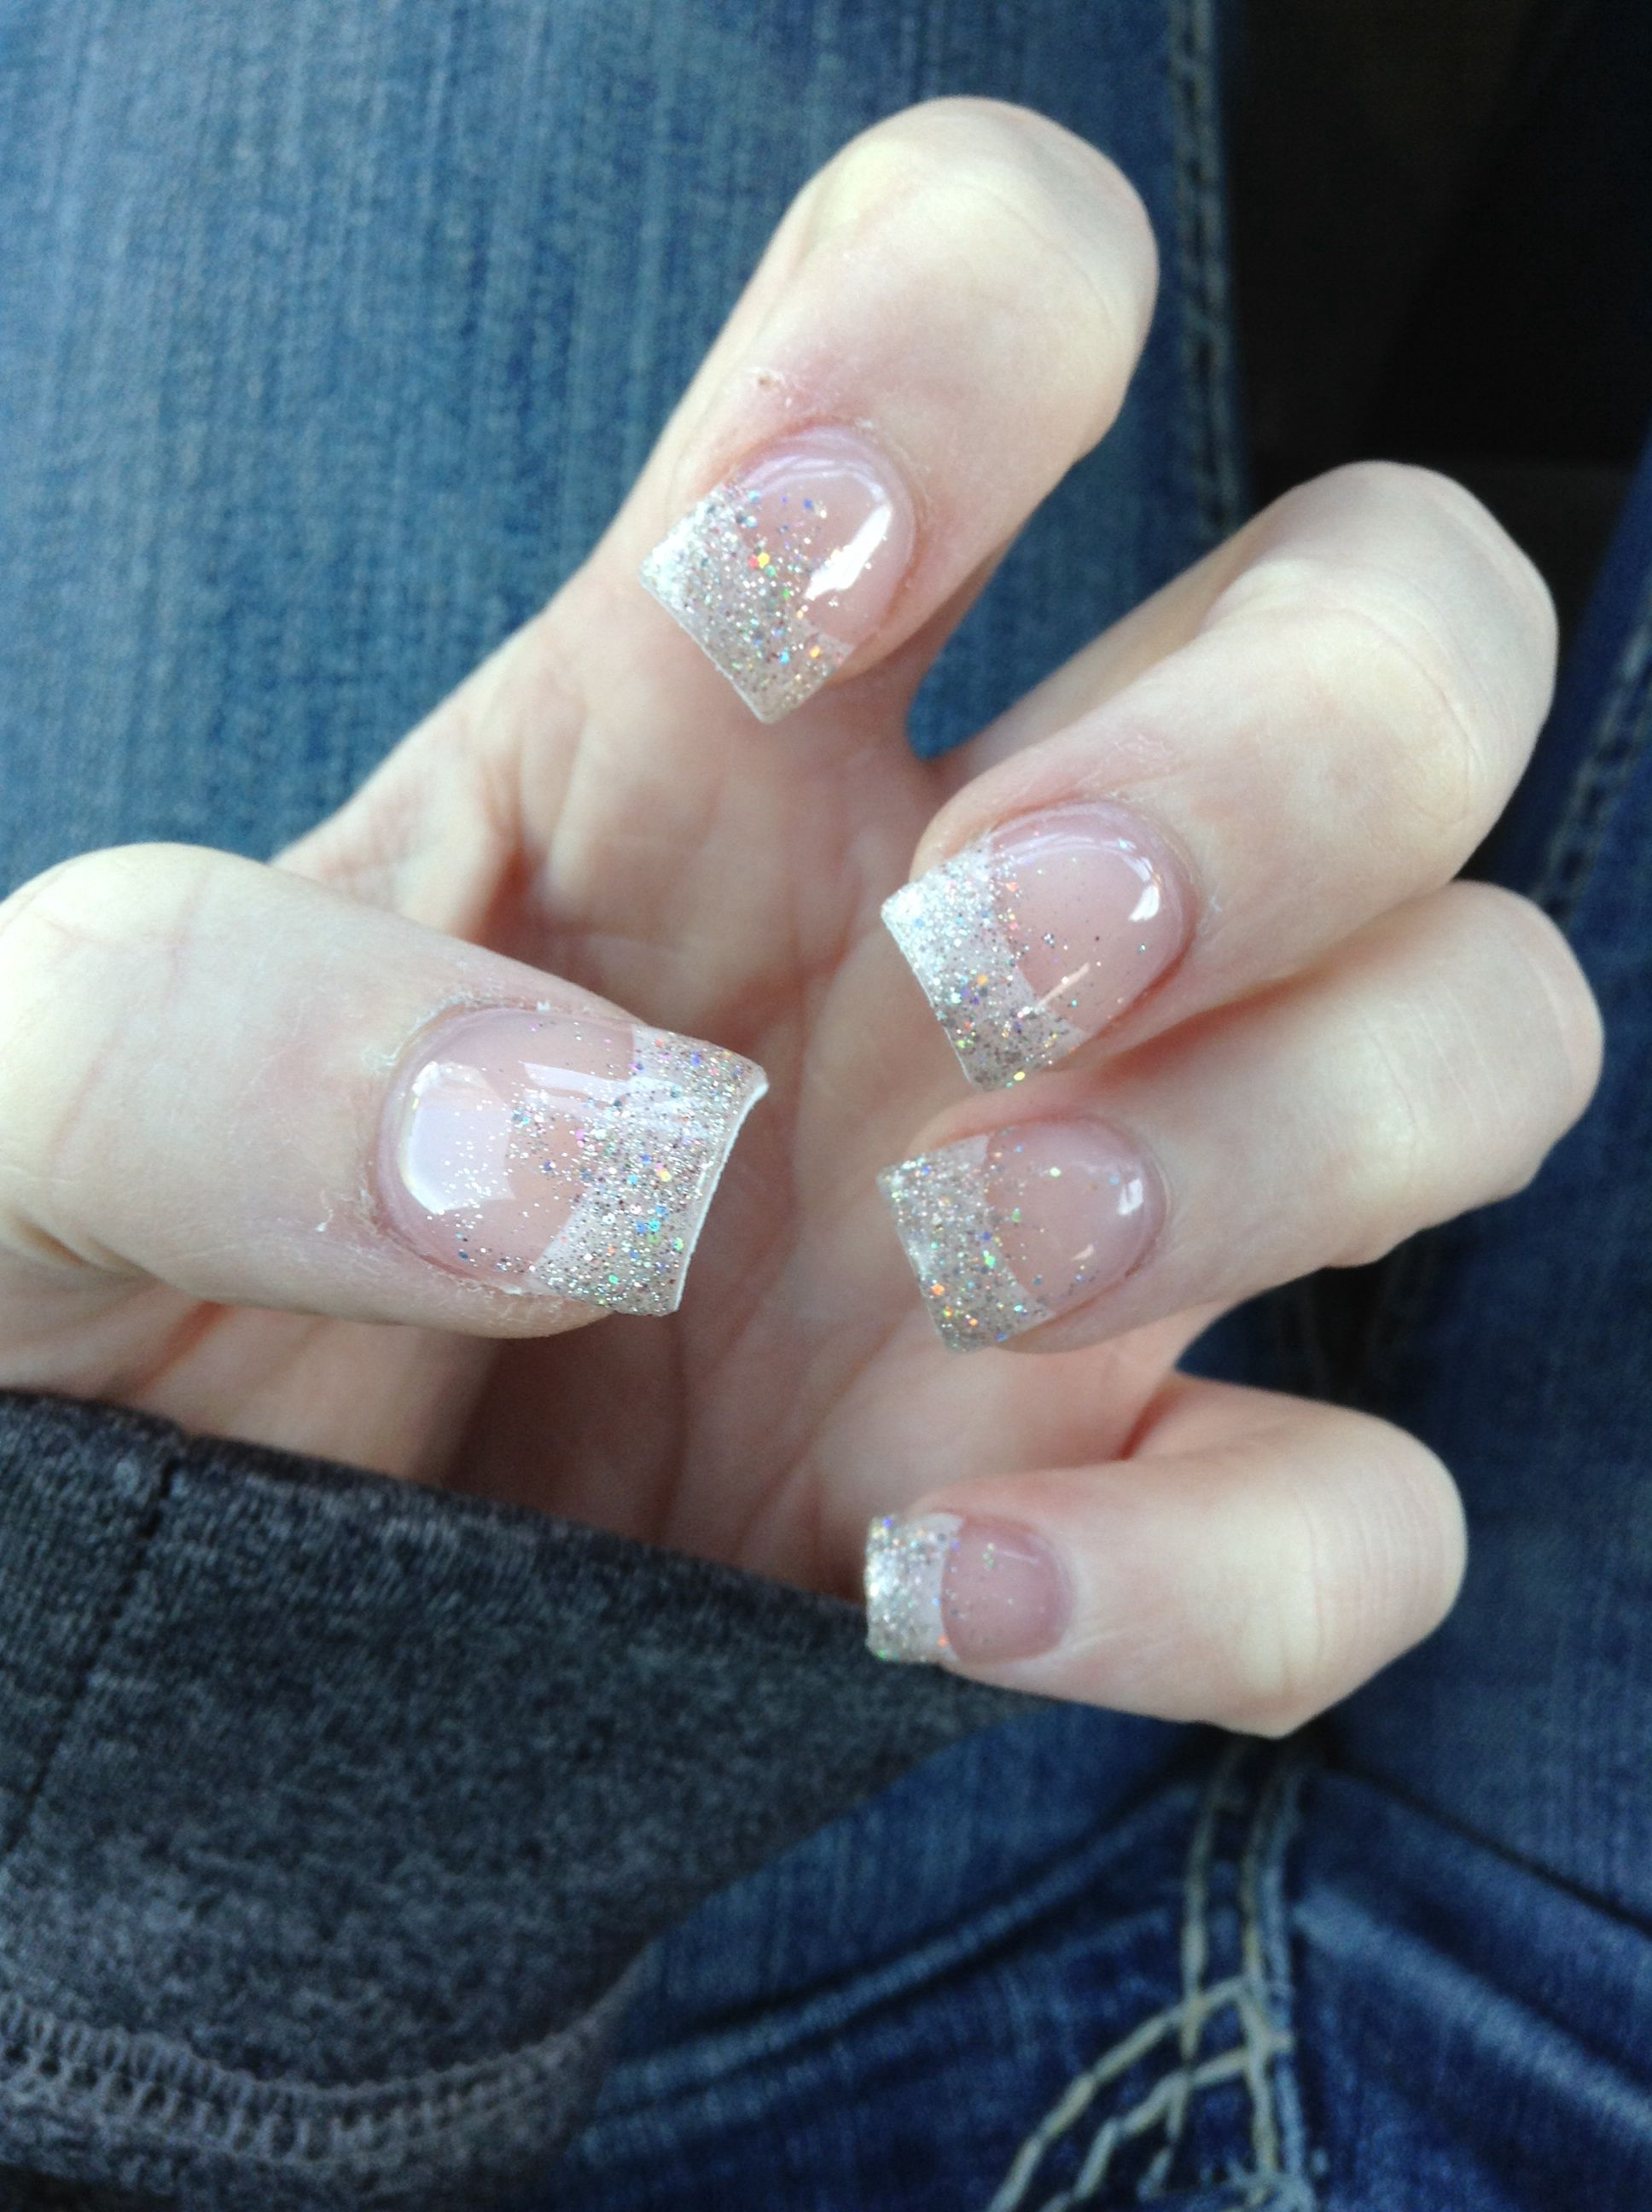 Sparkly Christmas nails :) French manicure ideas | Hair, Makeup ...